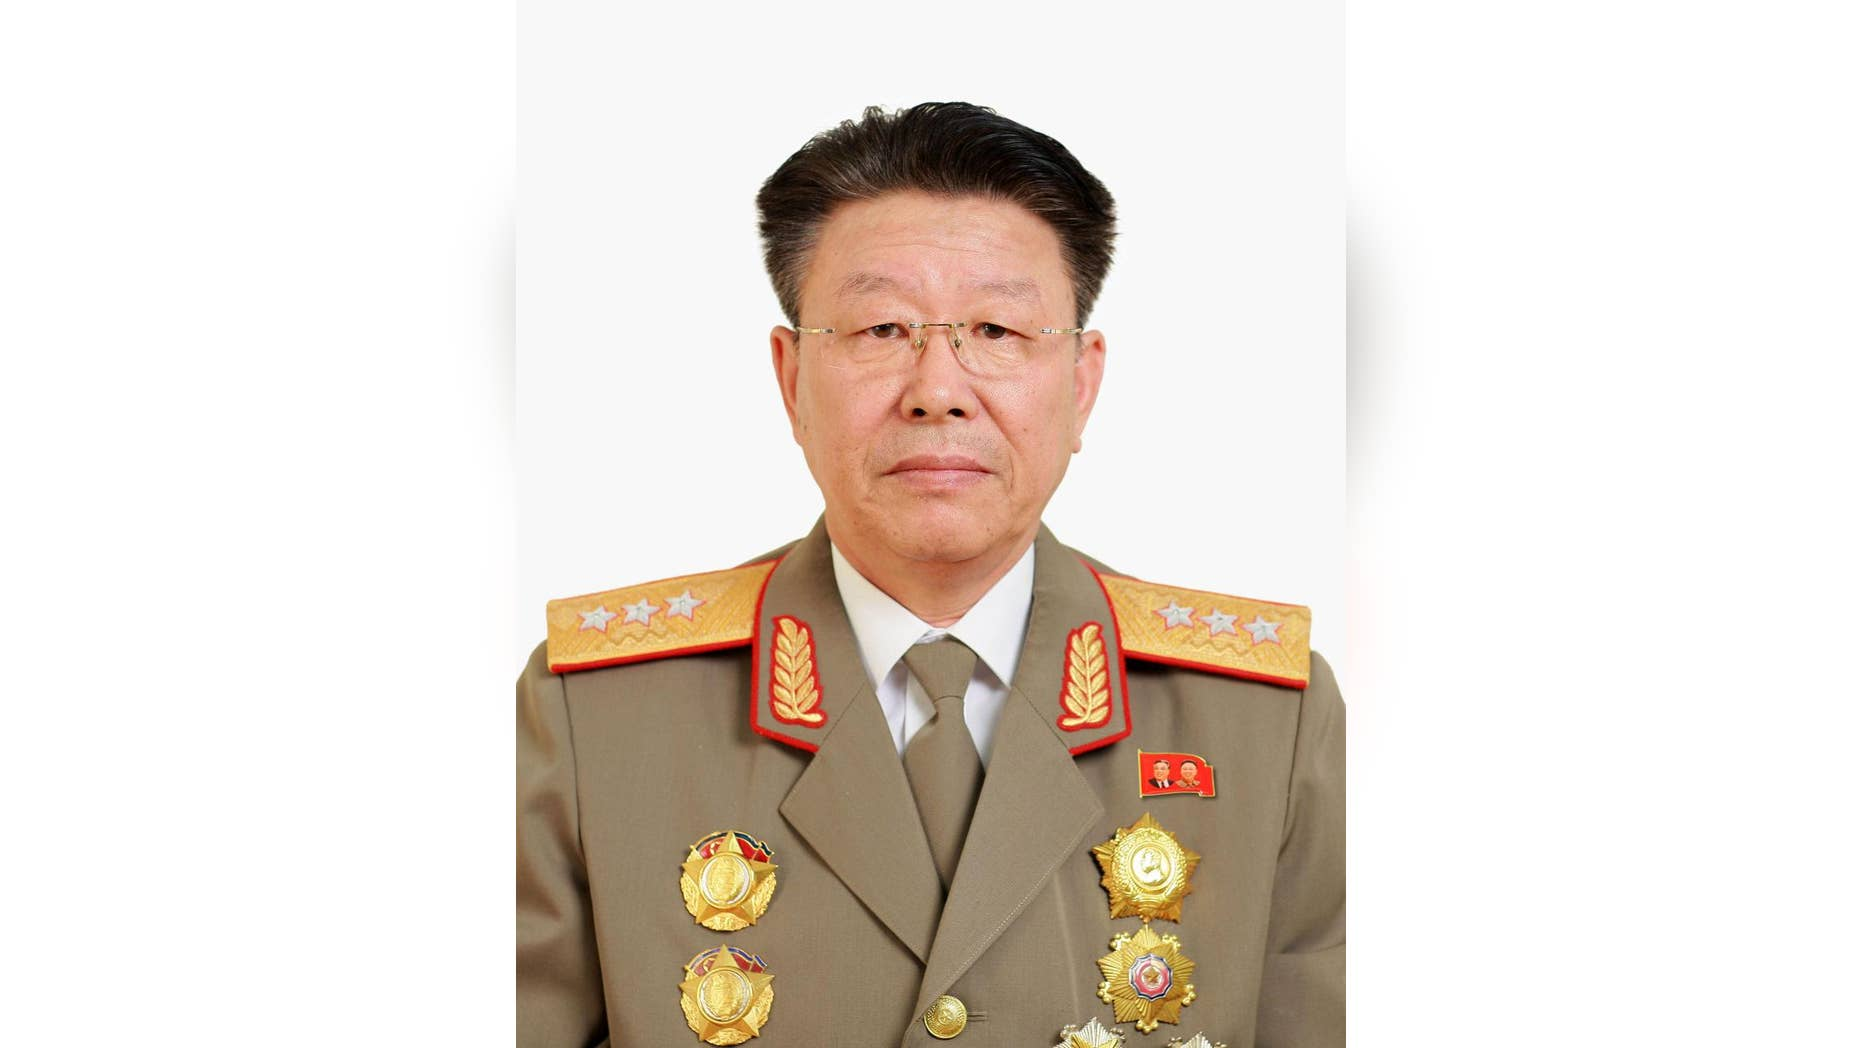 In this photo distributed on Wednesday, May 11, 2016, by the North Korean government, Ri Yong Gil, then North Korean military chief, poses for a photo.  Seoul's intelligence agents get battered in the press and by lawmakers for their gaffes, including one regarding Ri Yong Gil, the former head of North Korea's military. Officials in Seoul's National Intelligence Service, the country's main spy agency, reportedly said Ri had been executed, but at this month's ruling-party congress, he was seen not only alive but also in possession of several new titles.   (Korean Central News Agency/Korea News Service via AP) JAPAN OUT UNTIL 14 DAYS AFTER THE DAY OF TRANSMISSION